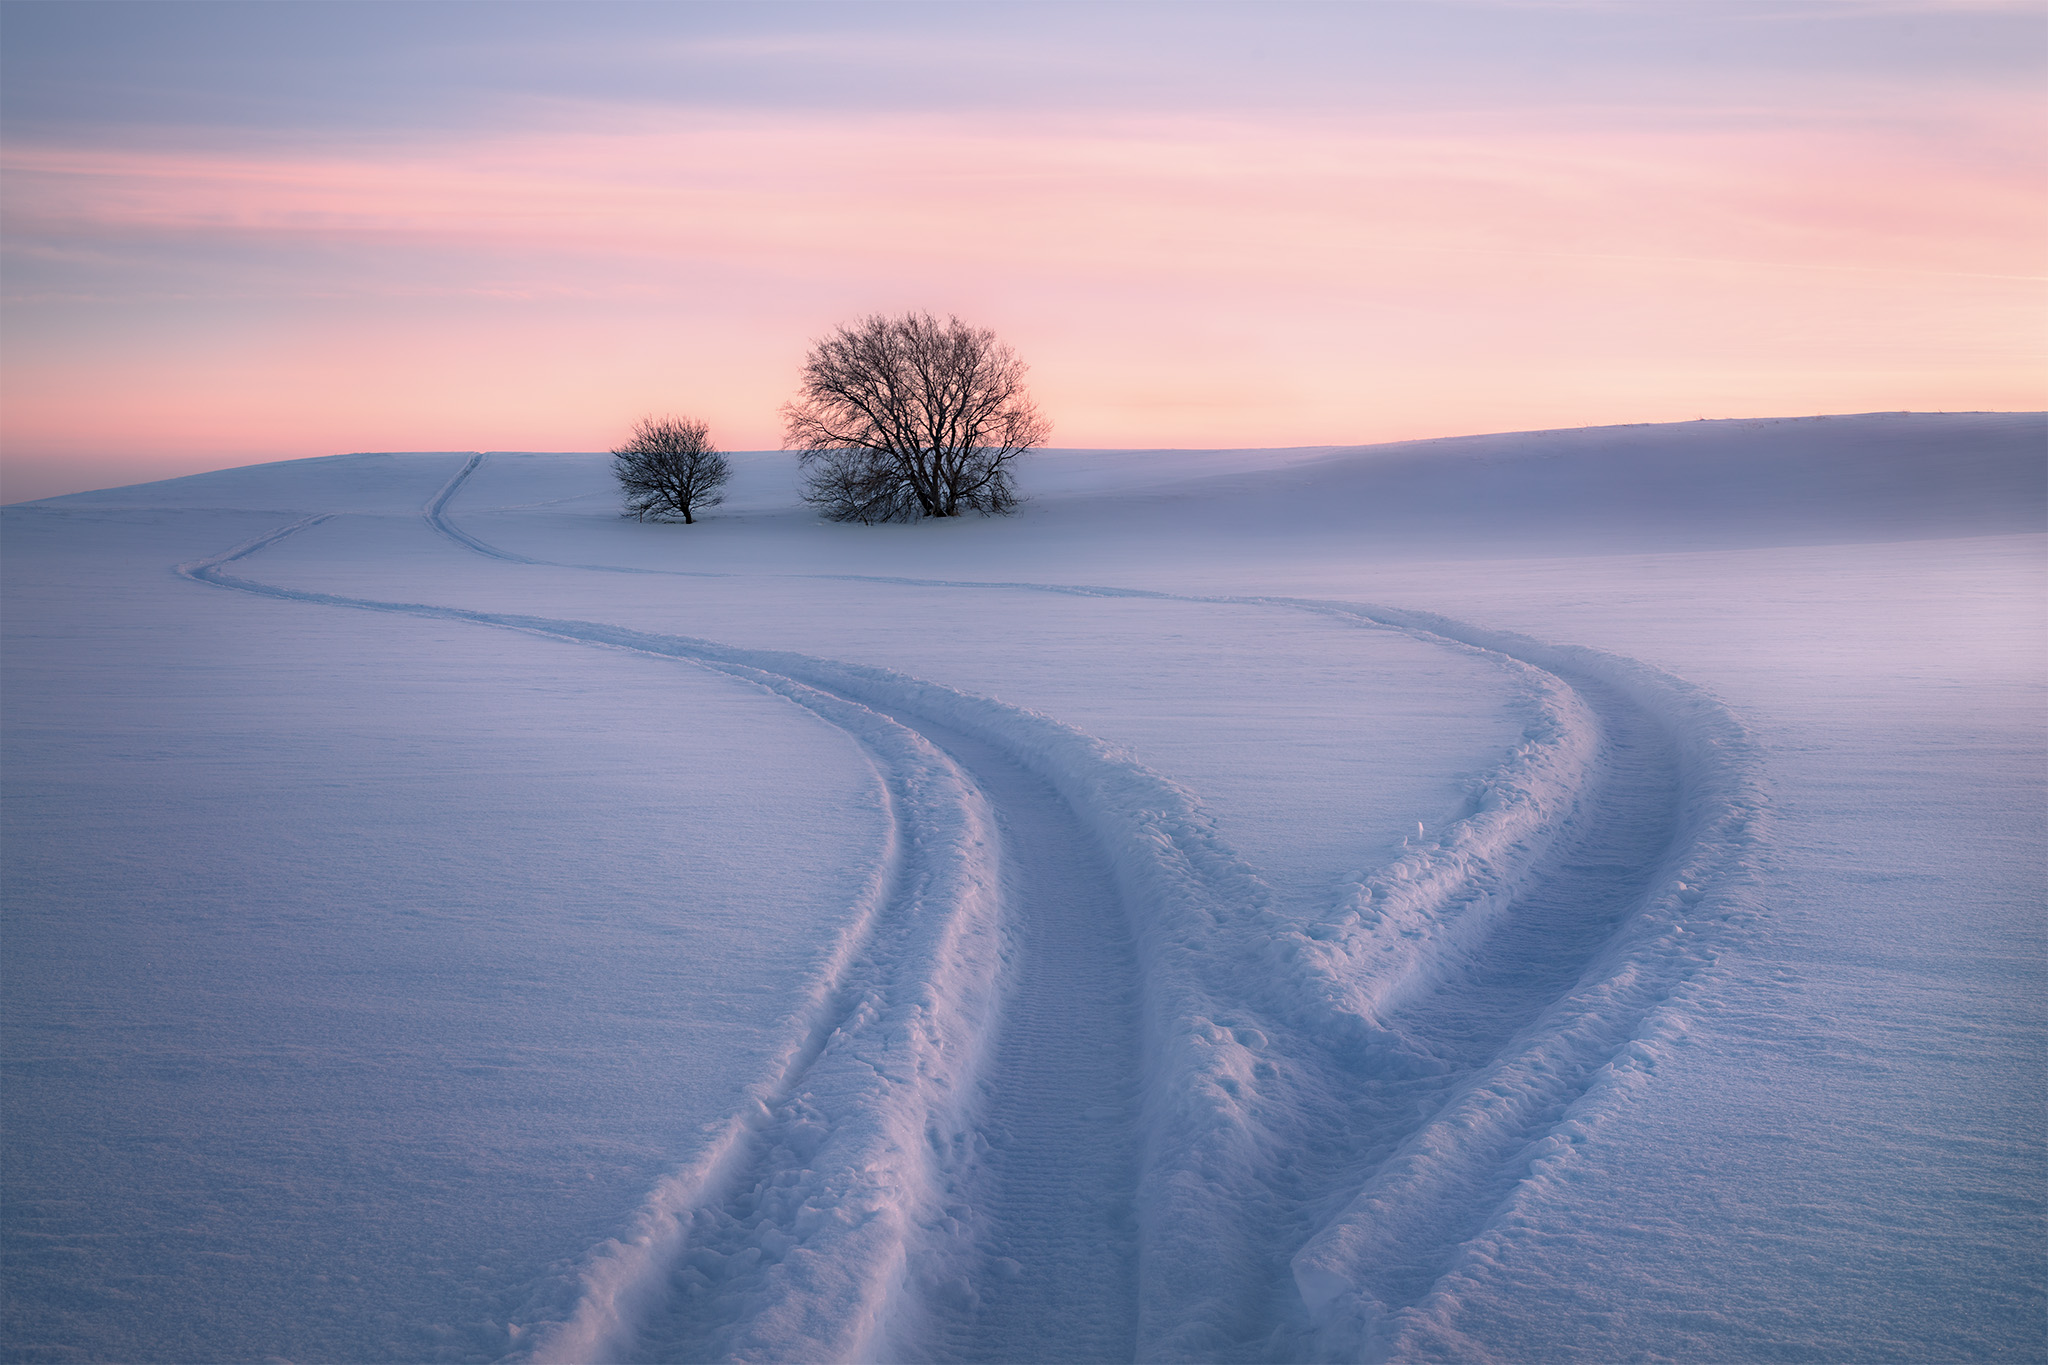 A nature photograph of two trees surrounded by deep snow in Saskatchewan